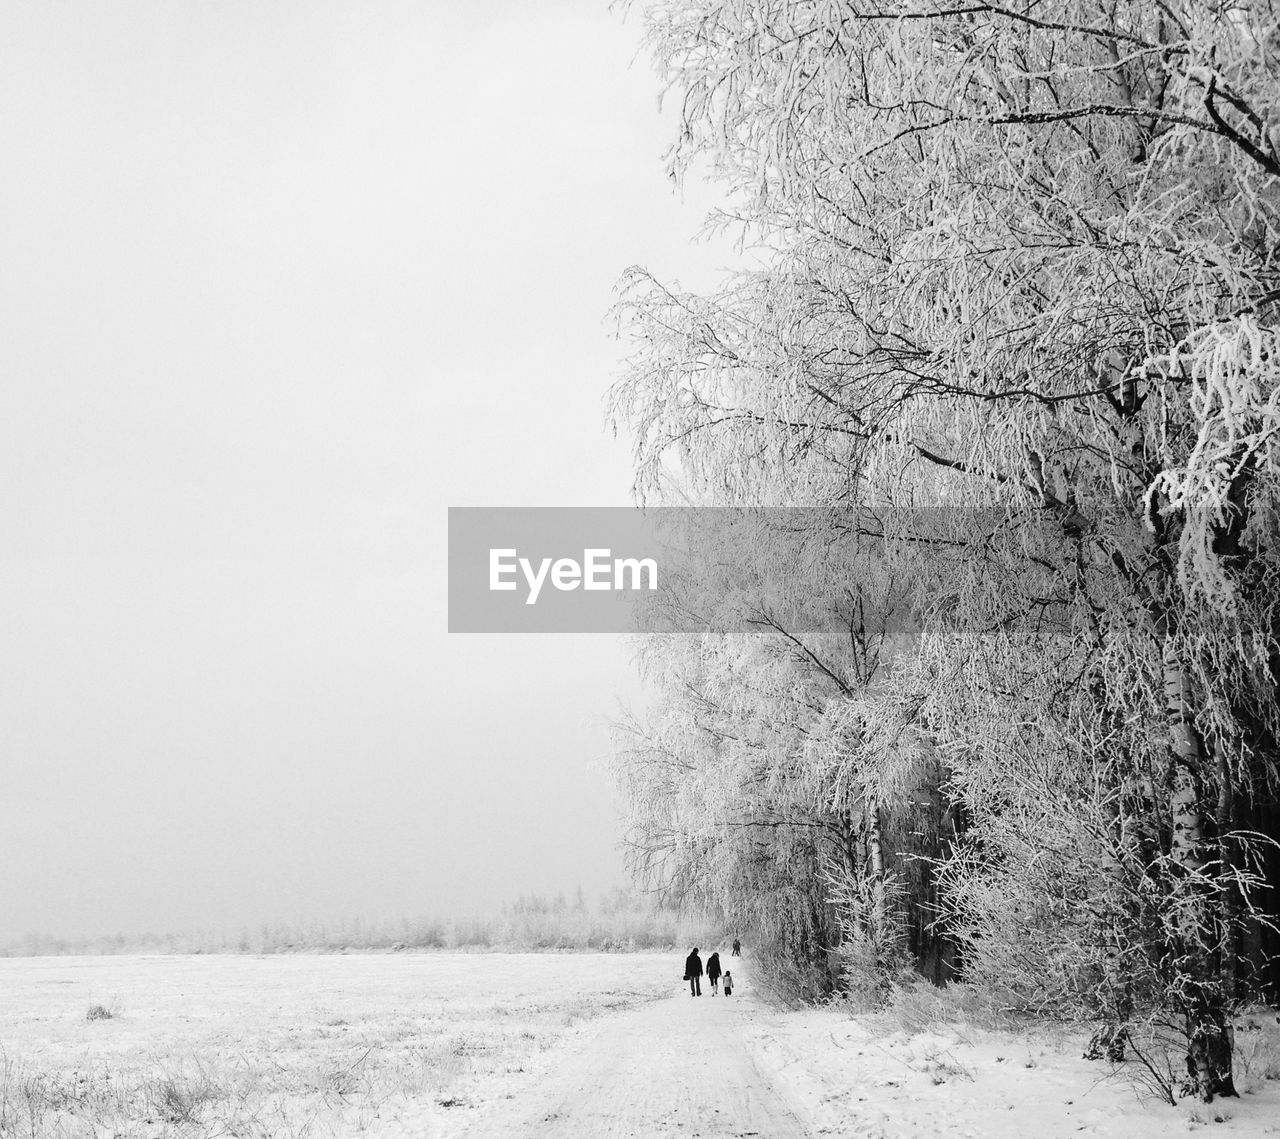 Three people walking on snow covered landscape along trees